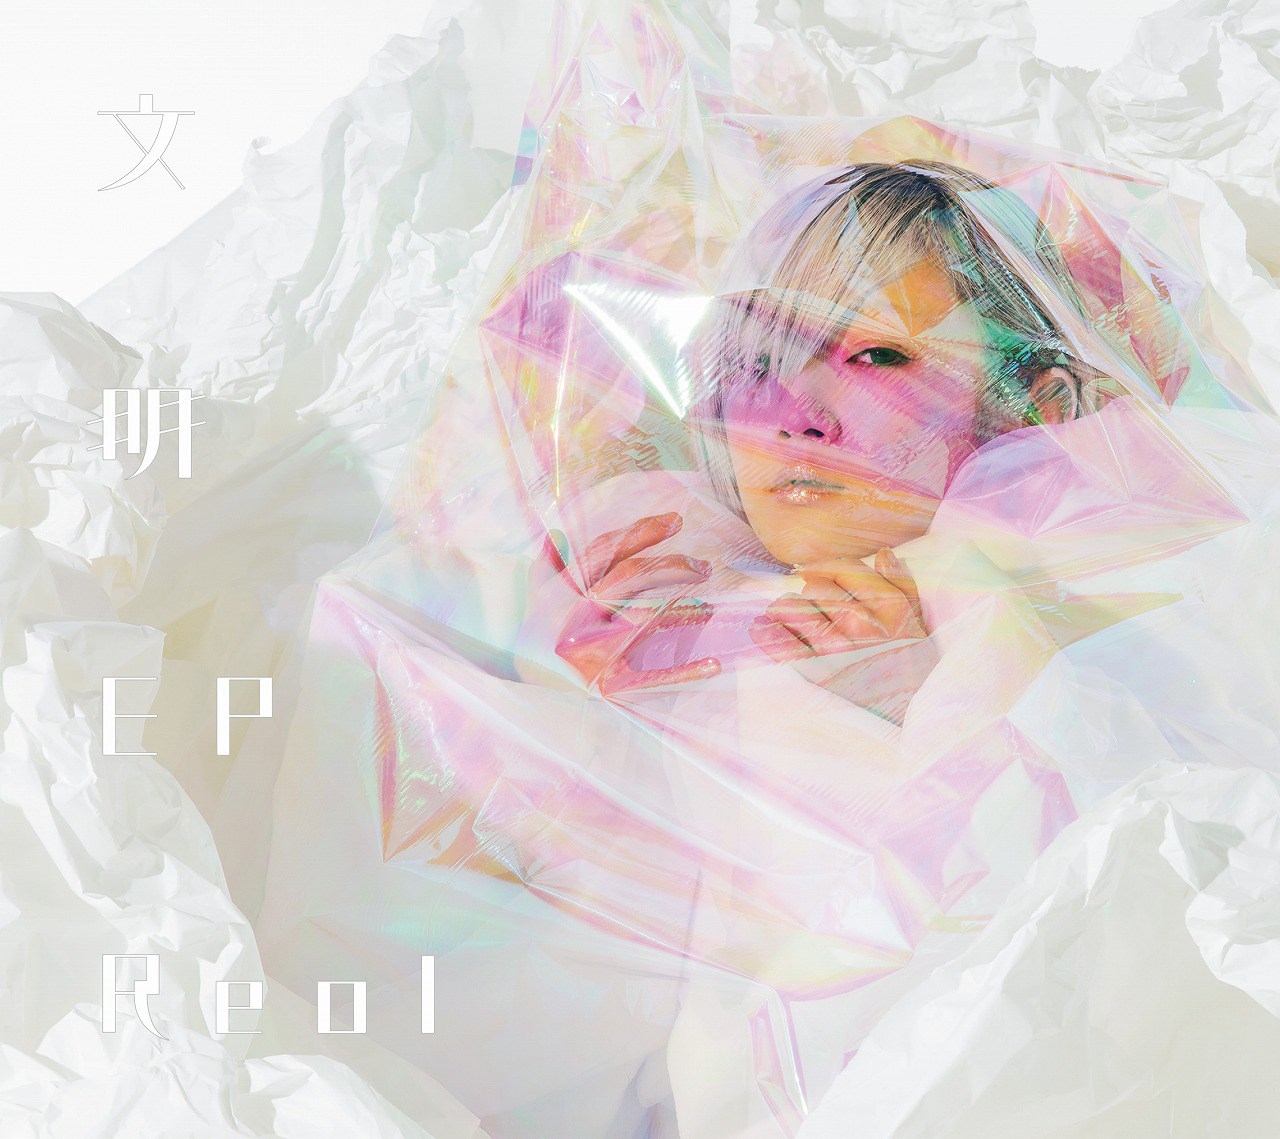 Reol New EP「文明EP」初回限定盤